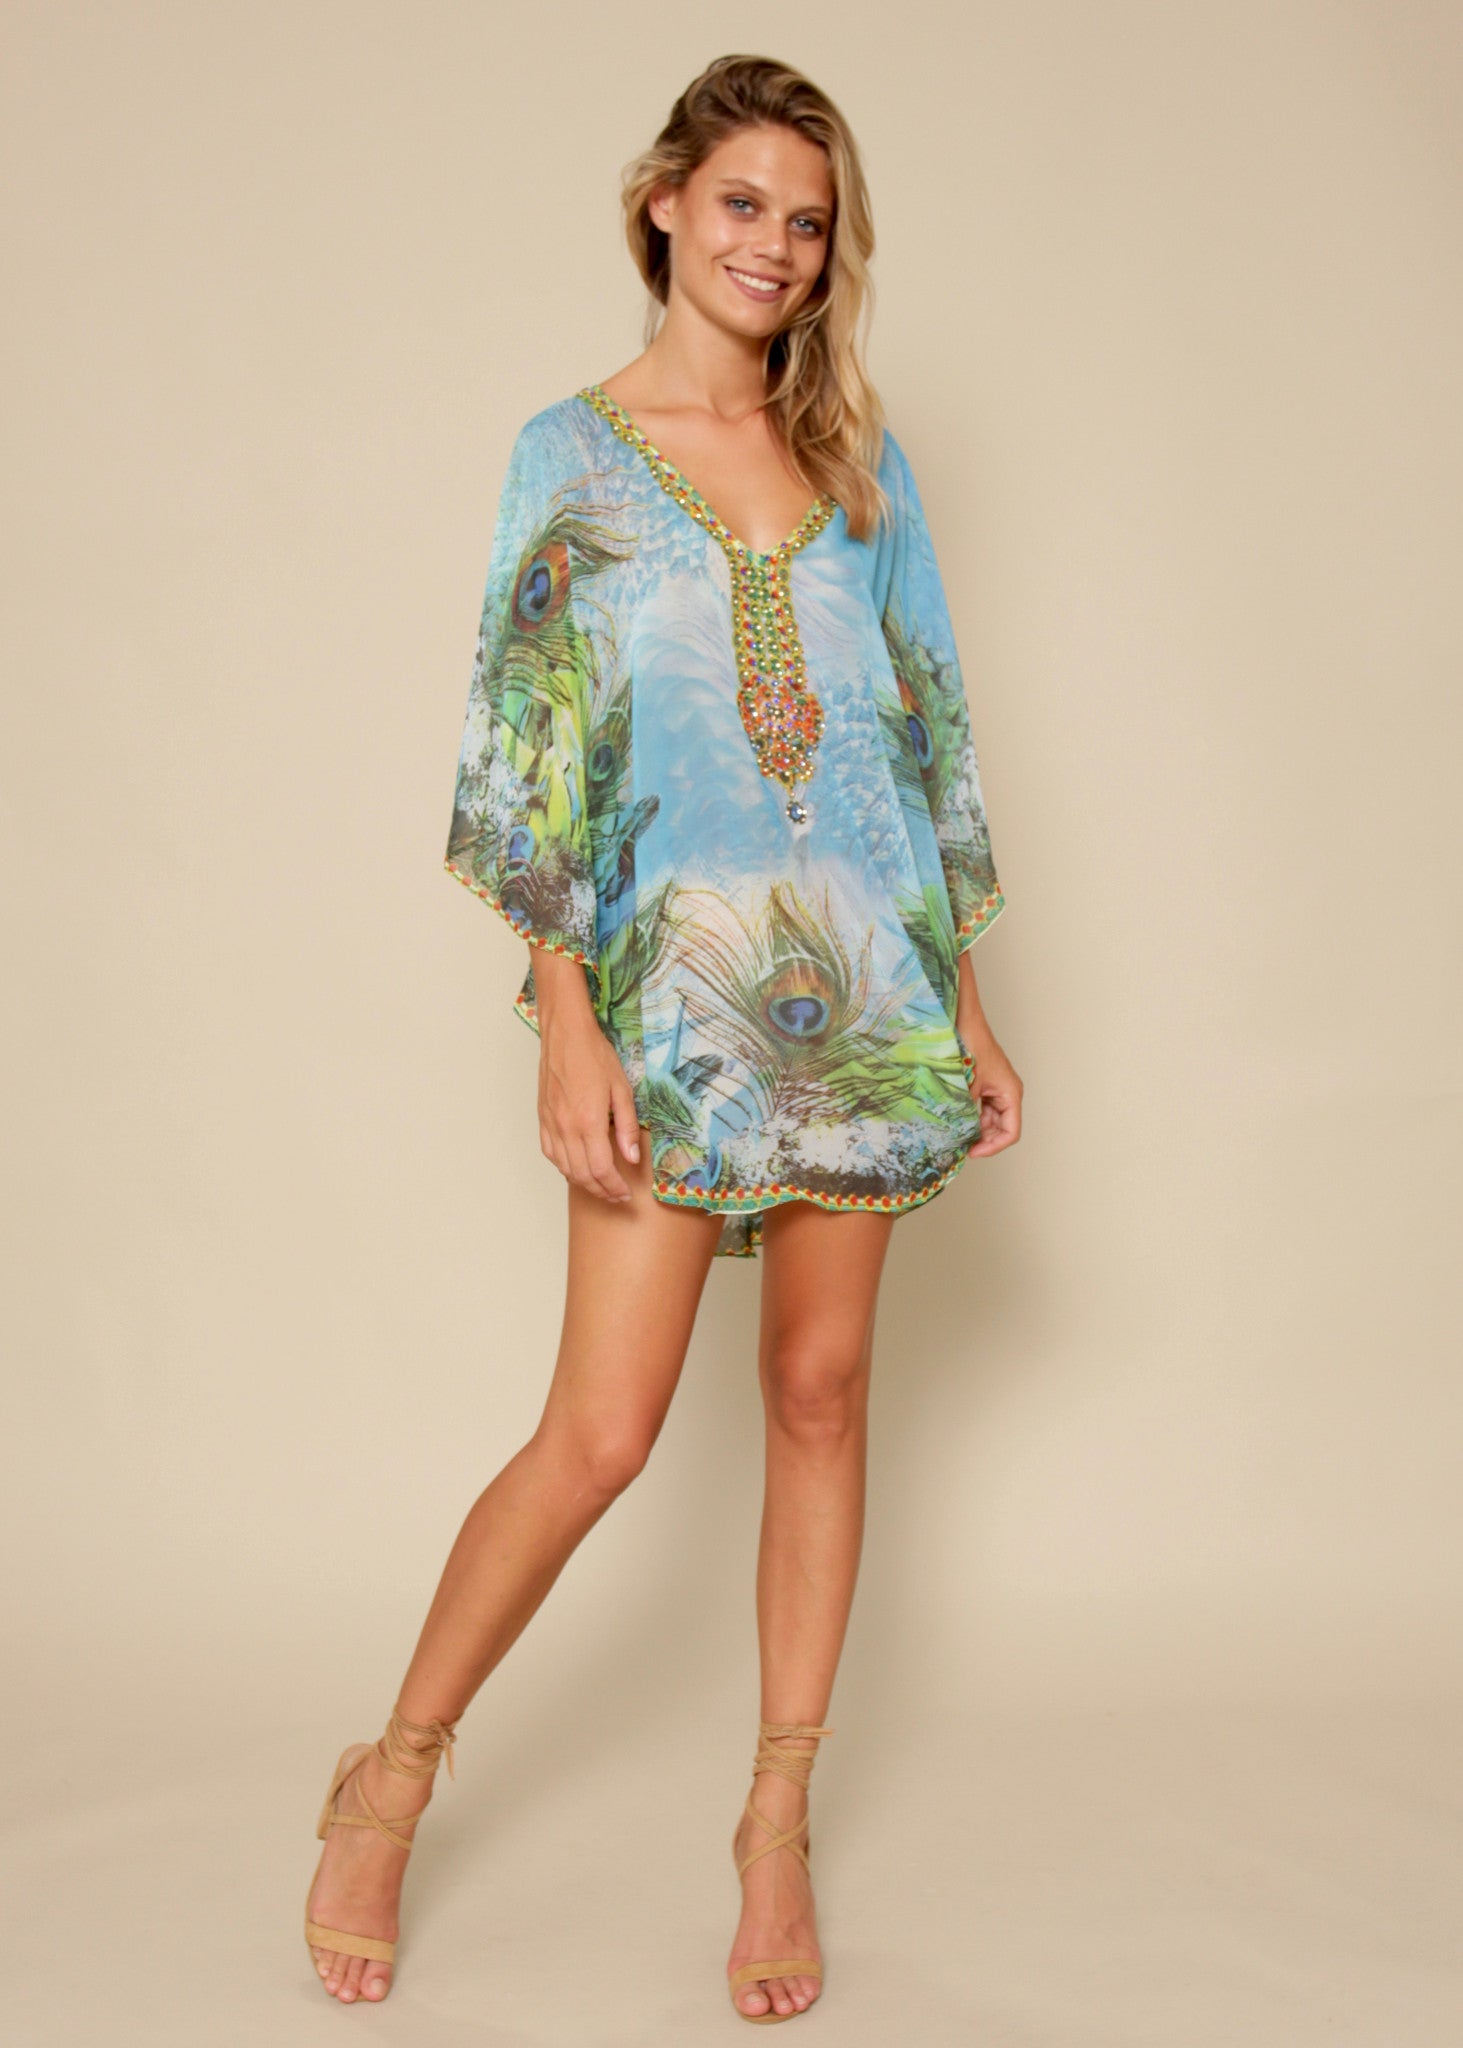 All A Dream Chiffon Kaftan - Aqua